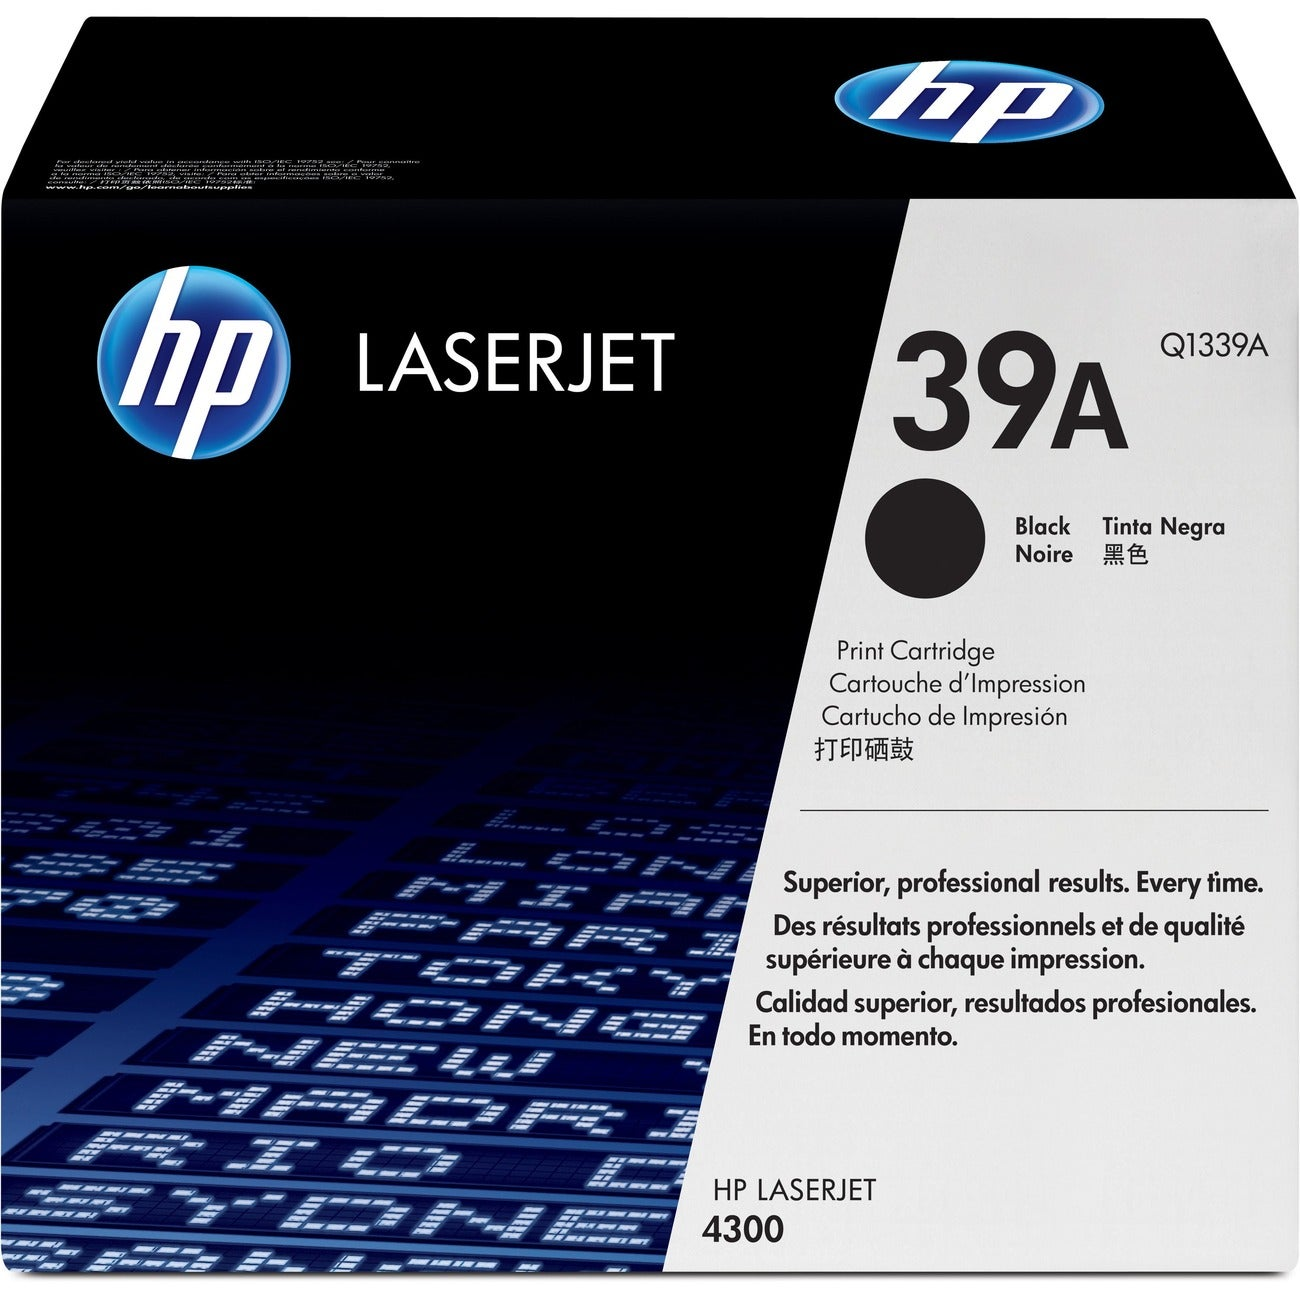 HP Black Toner Cartridge - 18000 Page - Black - Package: 1 - Thumbnail 0